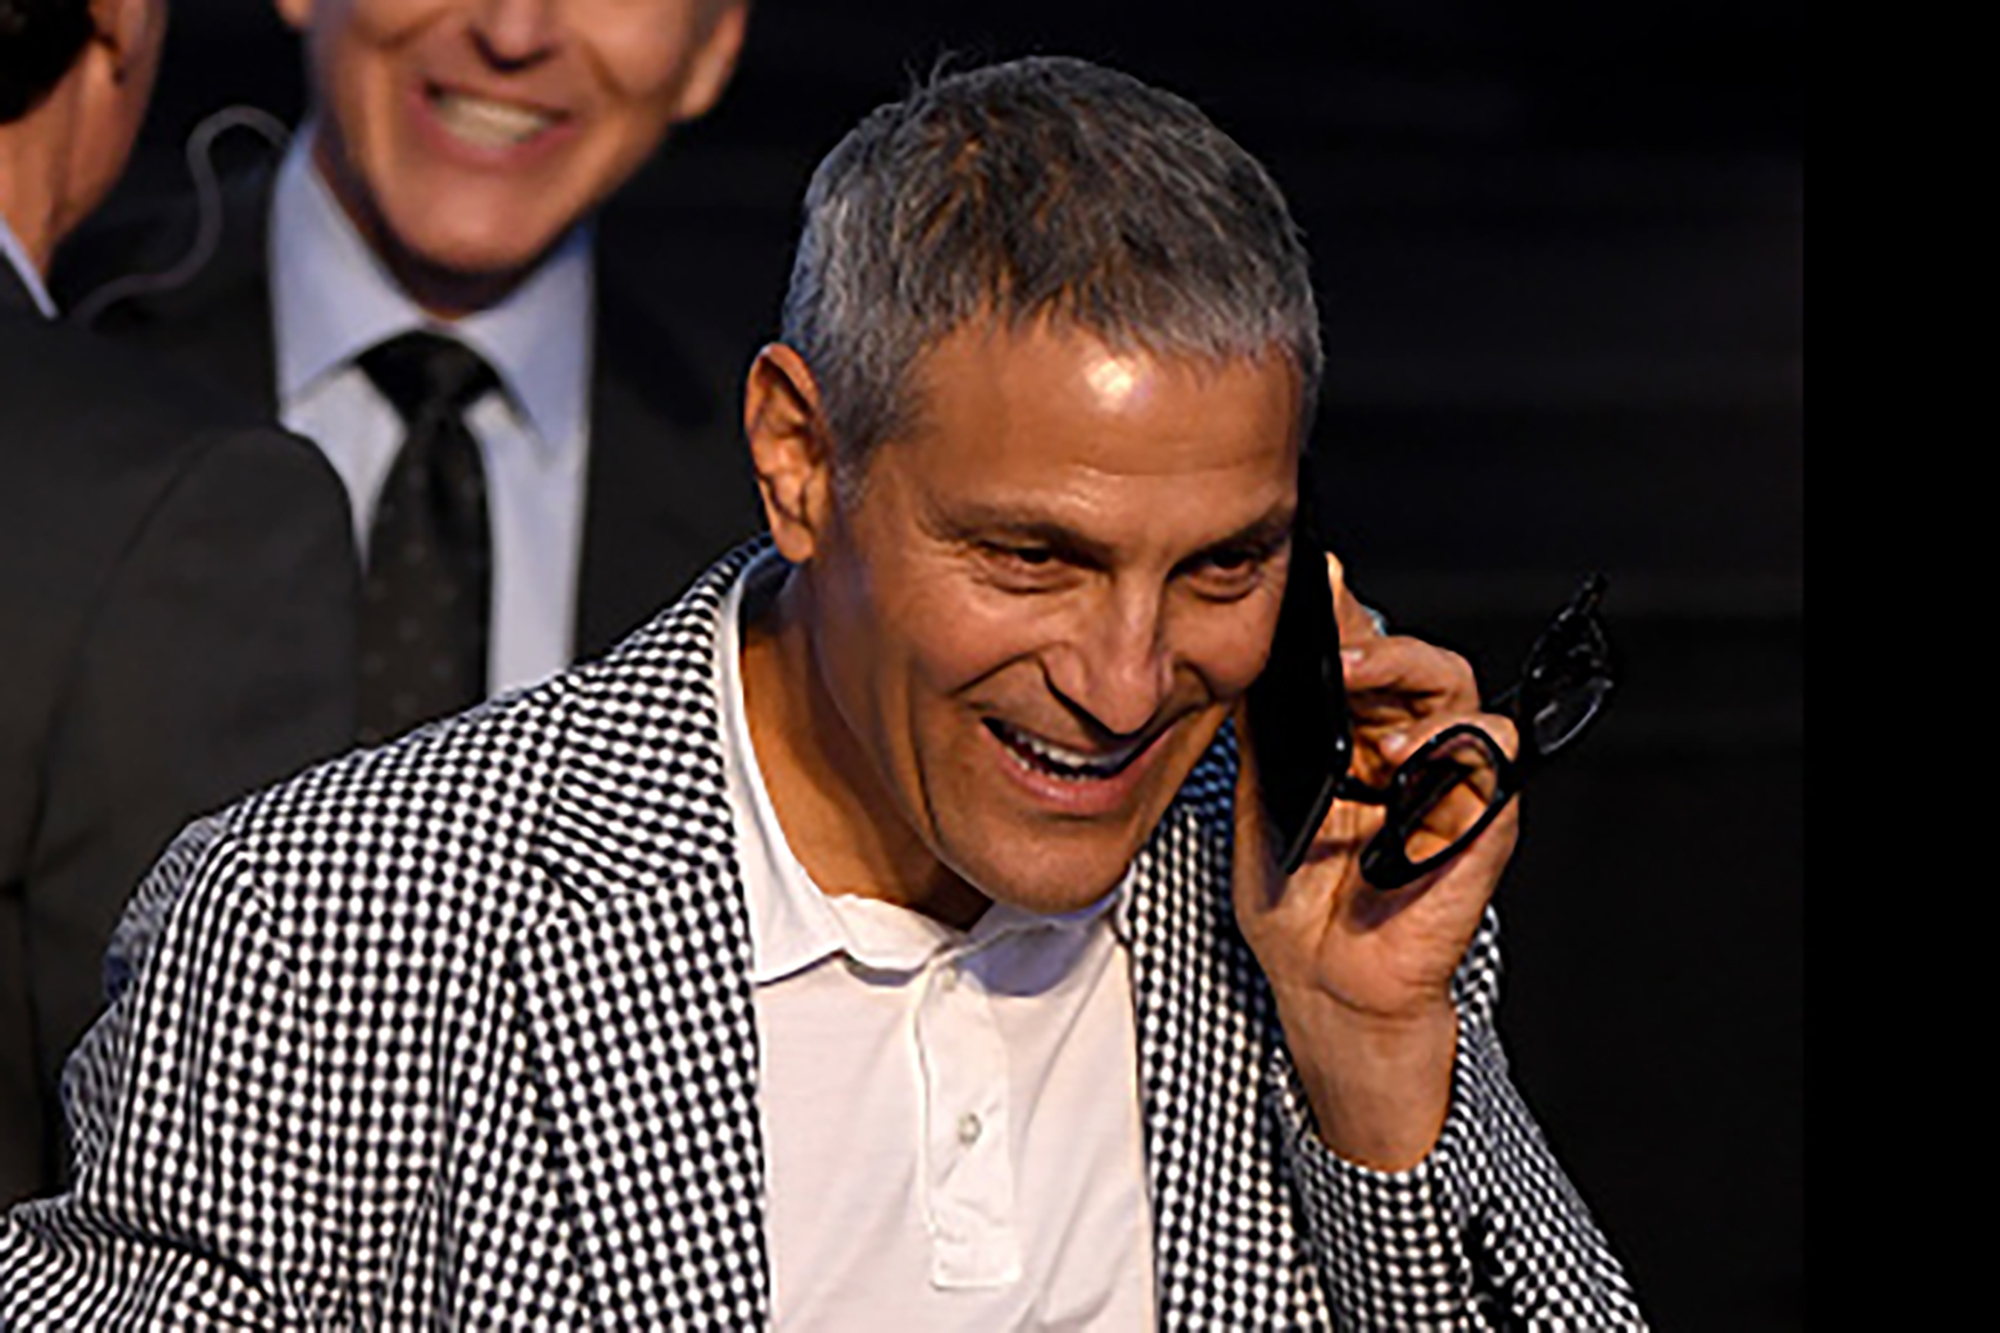 Ari Emanuel S Hollywood Talent Agency Wme To Cut 300 Jobs